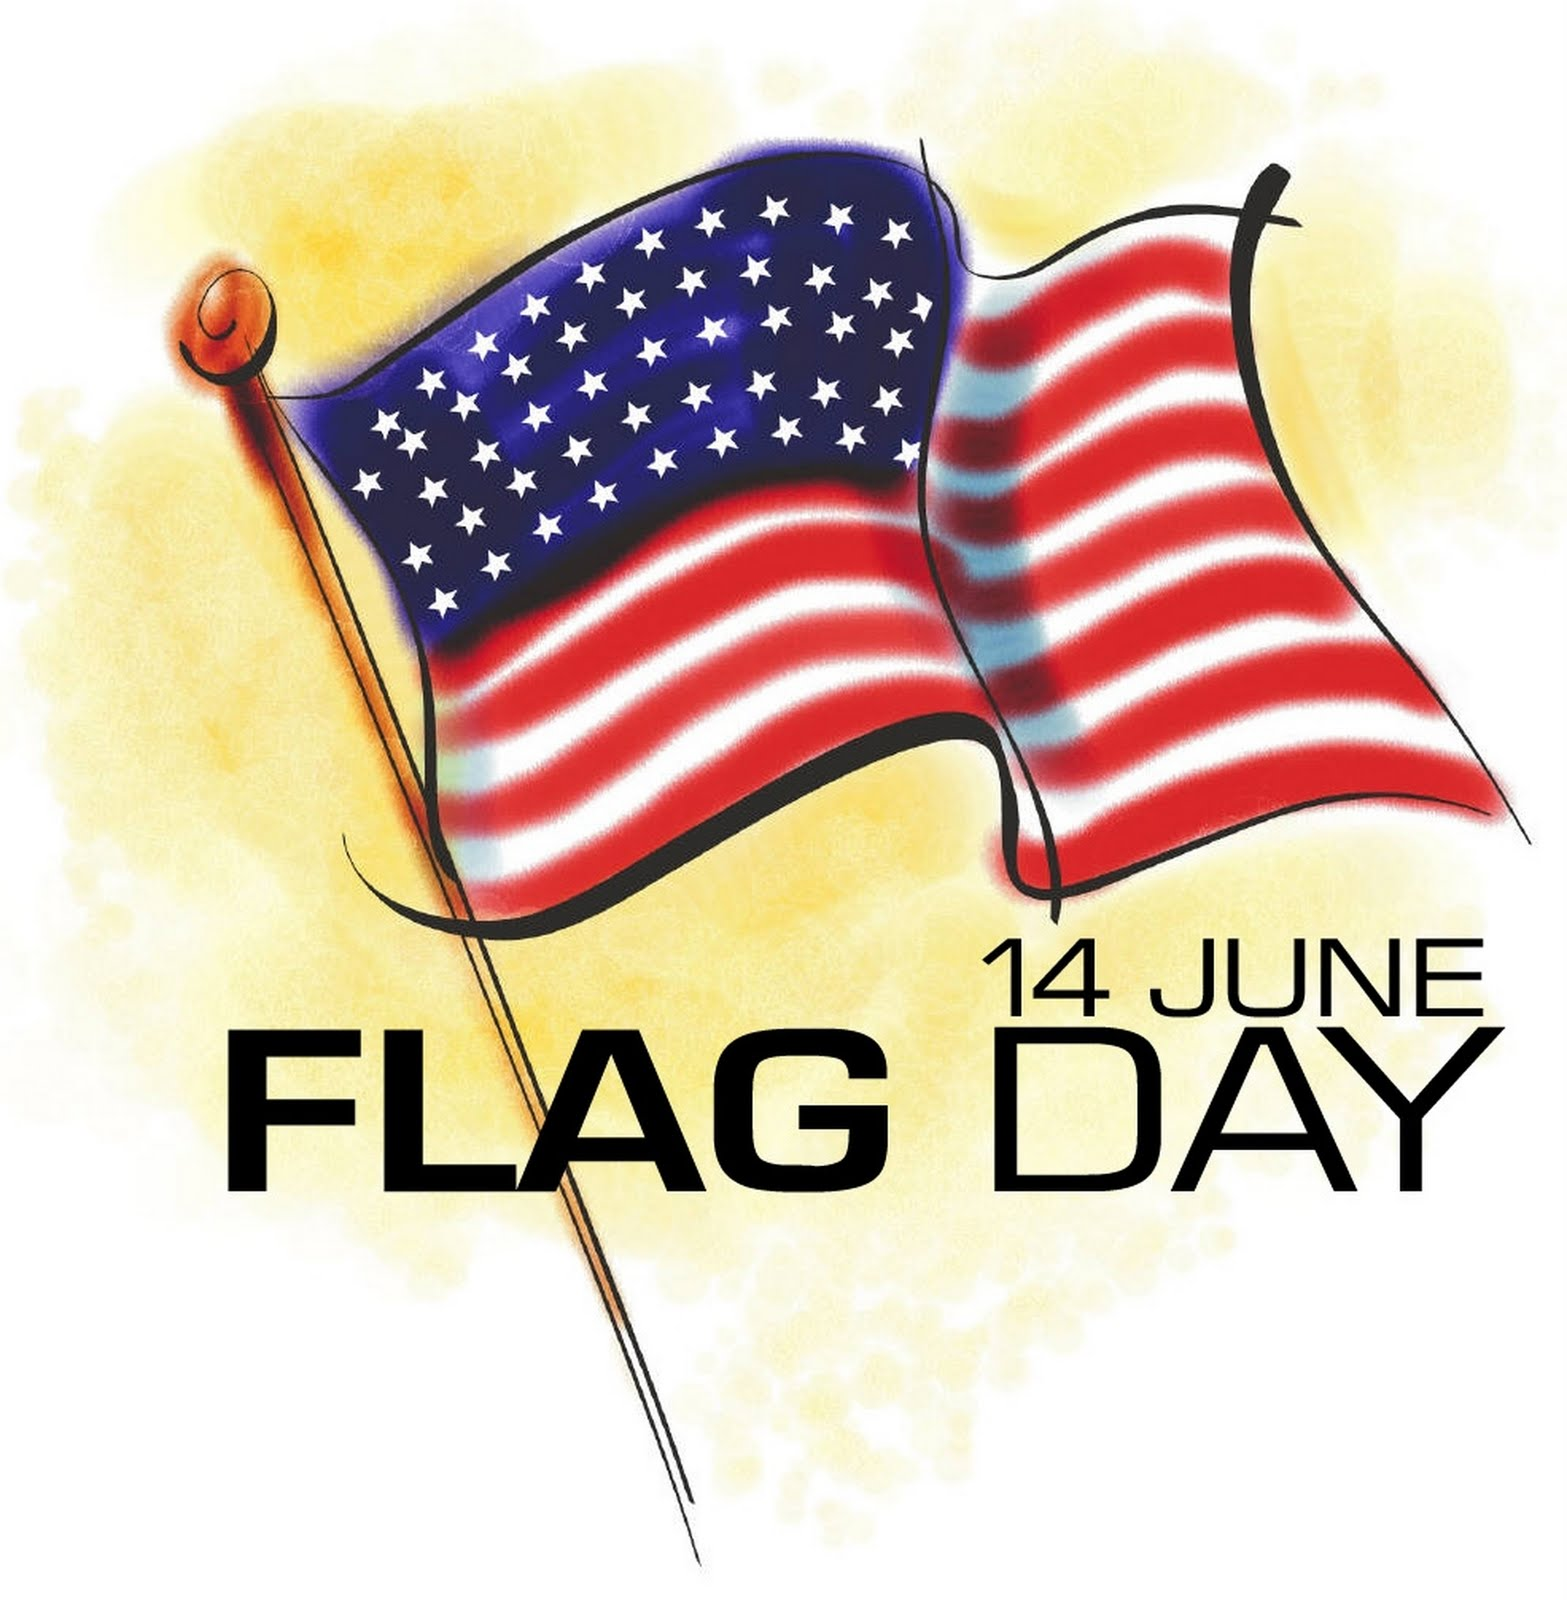 Celebrate clipart flag. Annies home happy day